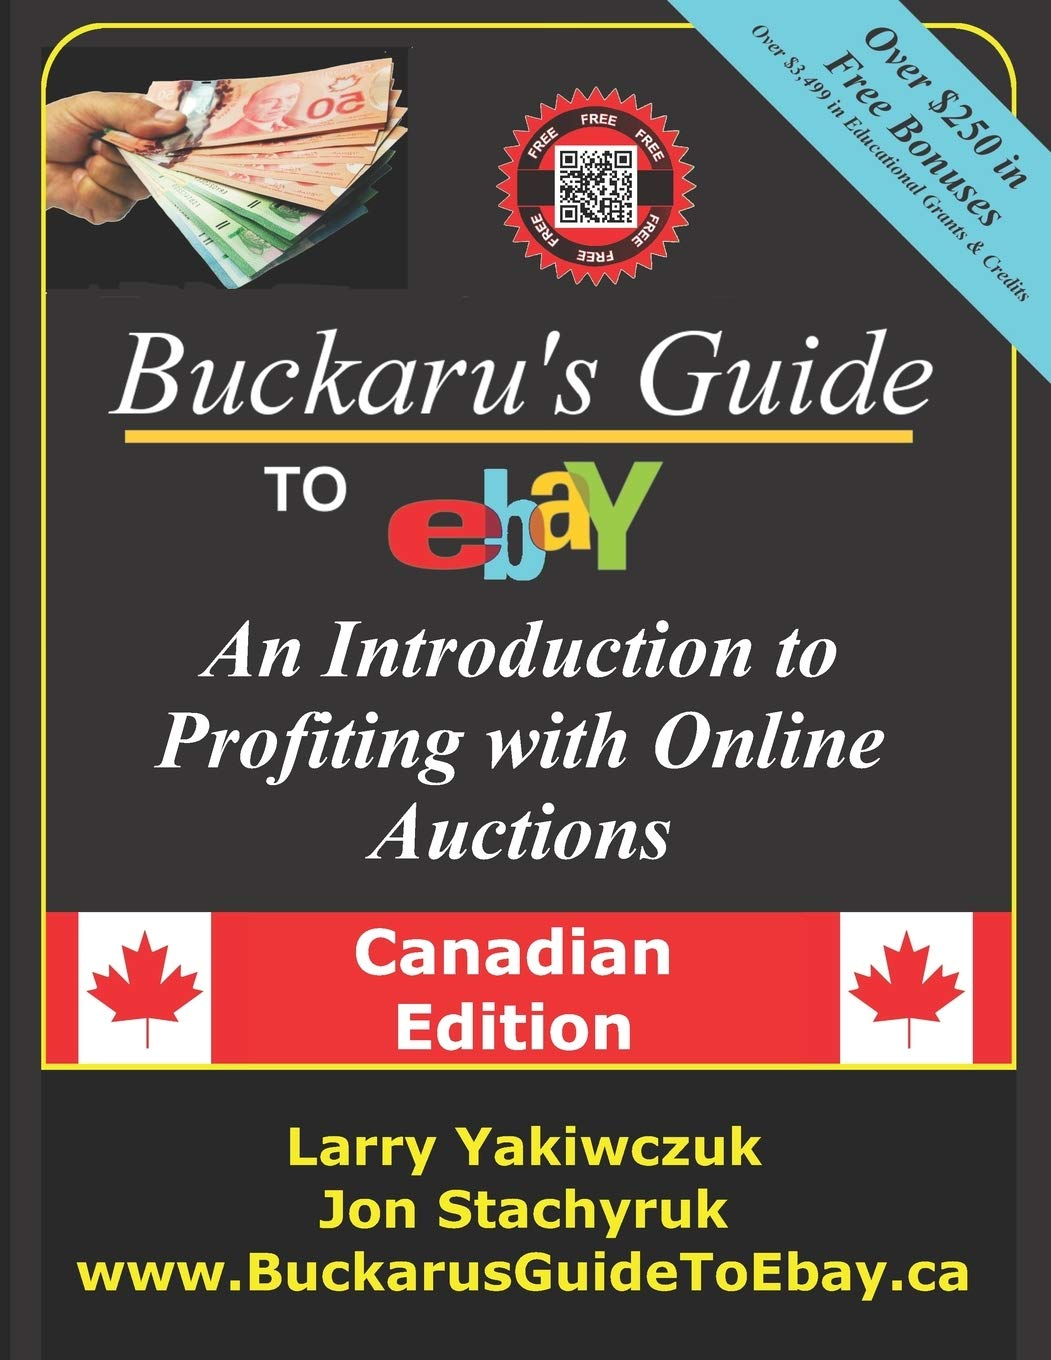 Buckaru S Guide To Ebay An Introduction To Profiting With Online Auctions Canadian Edition Yakiwczuk Larry Stachyruk Jon 9780995069718 Books Amazon Ca